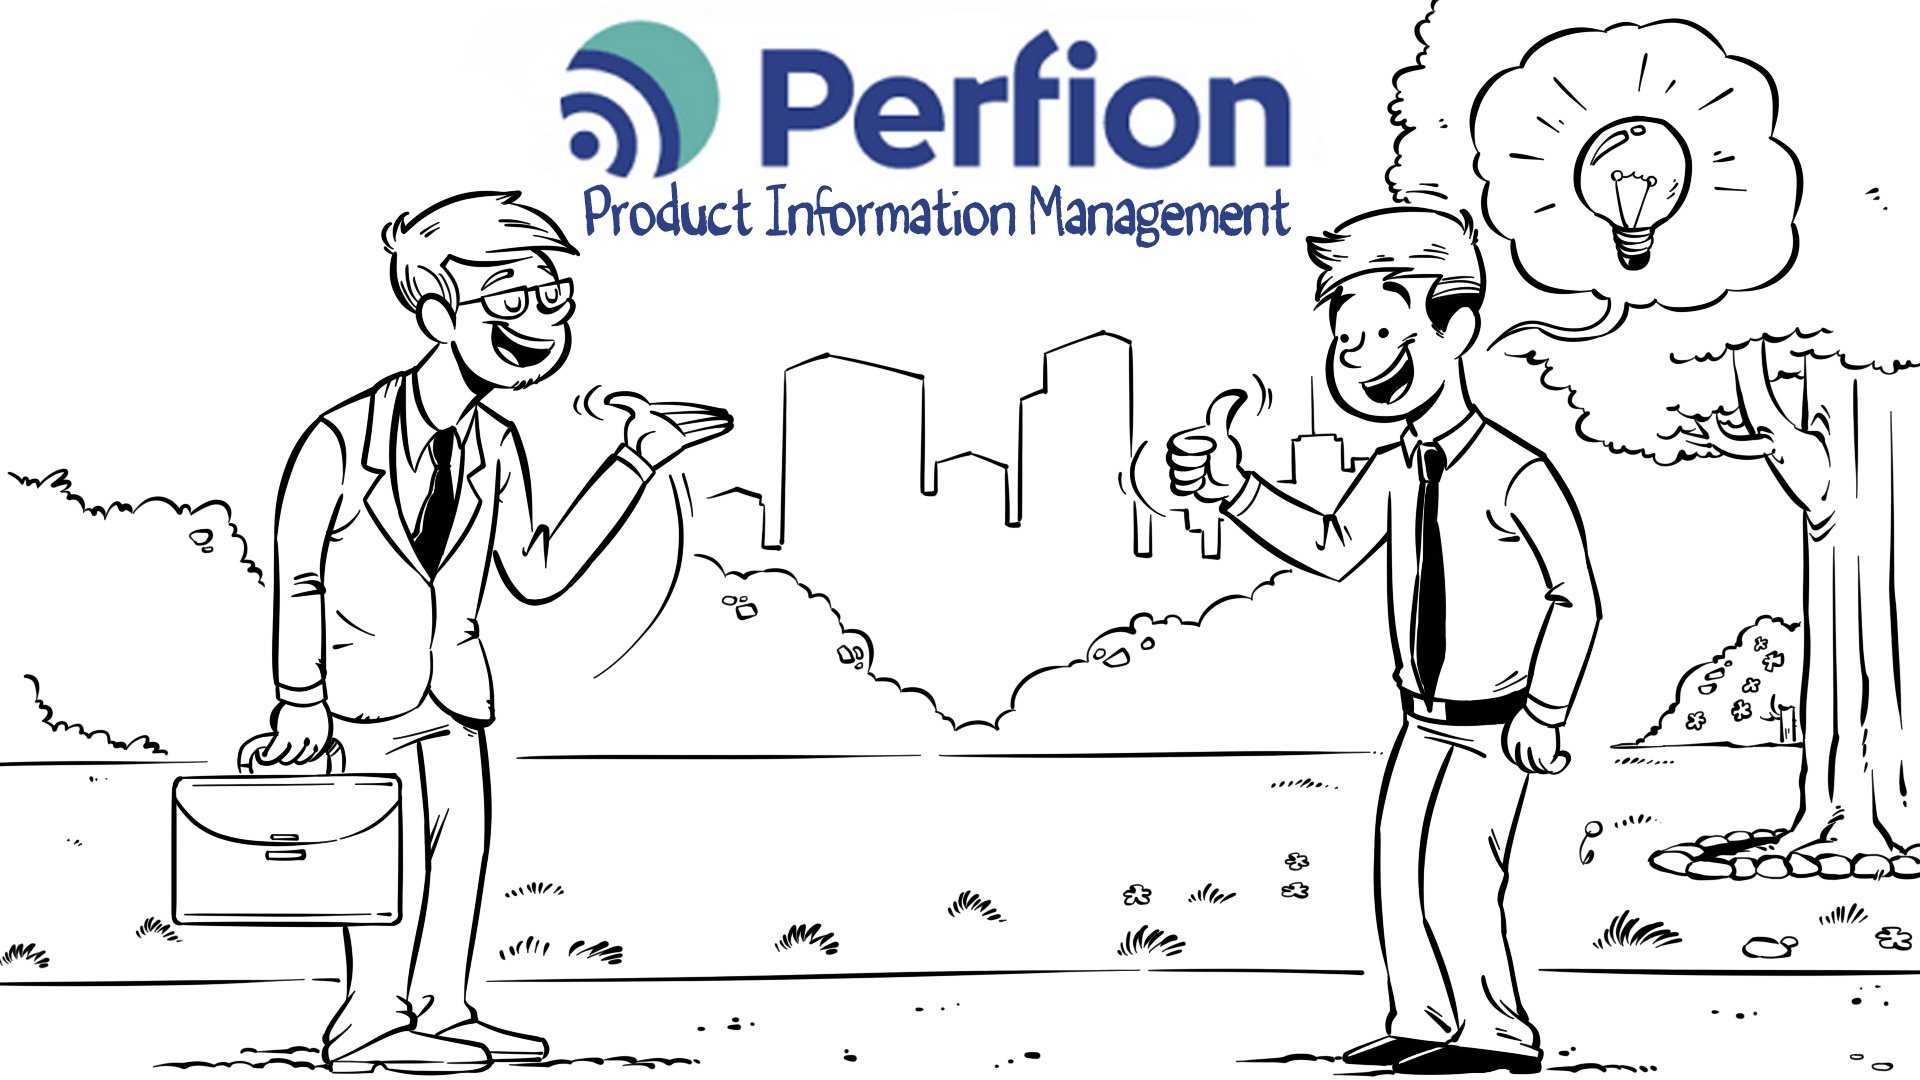 Perfion Produktiformations-management PIM